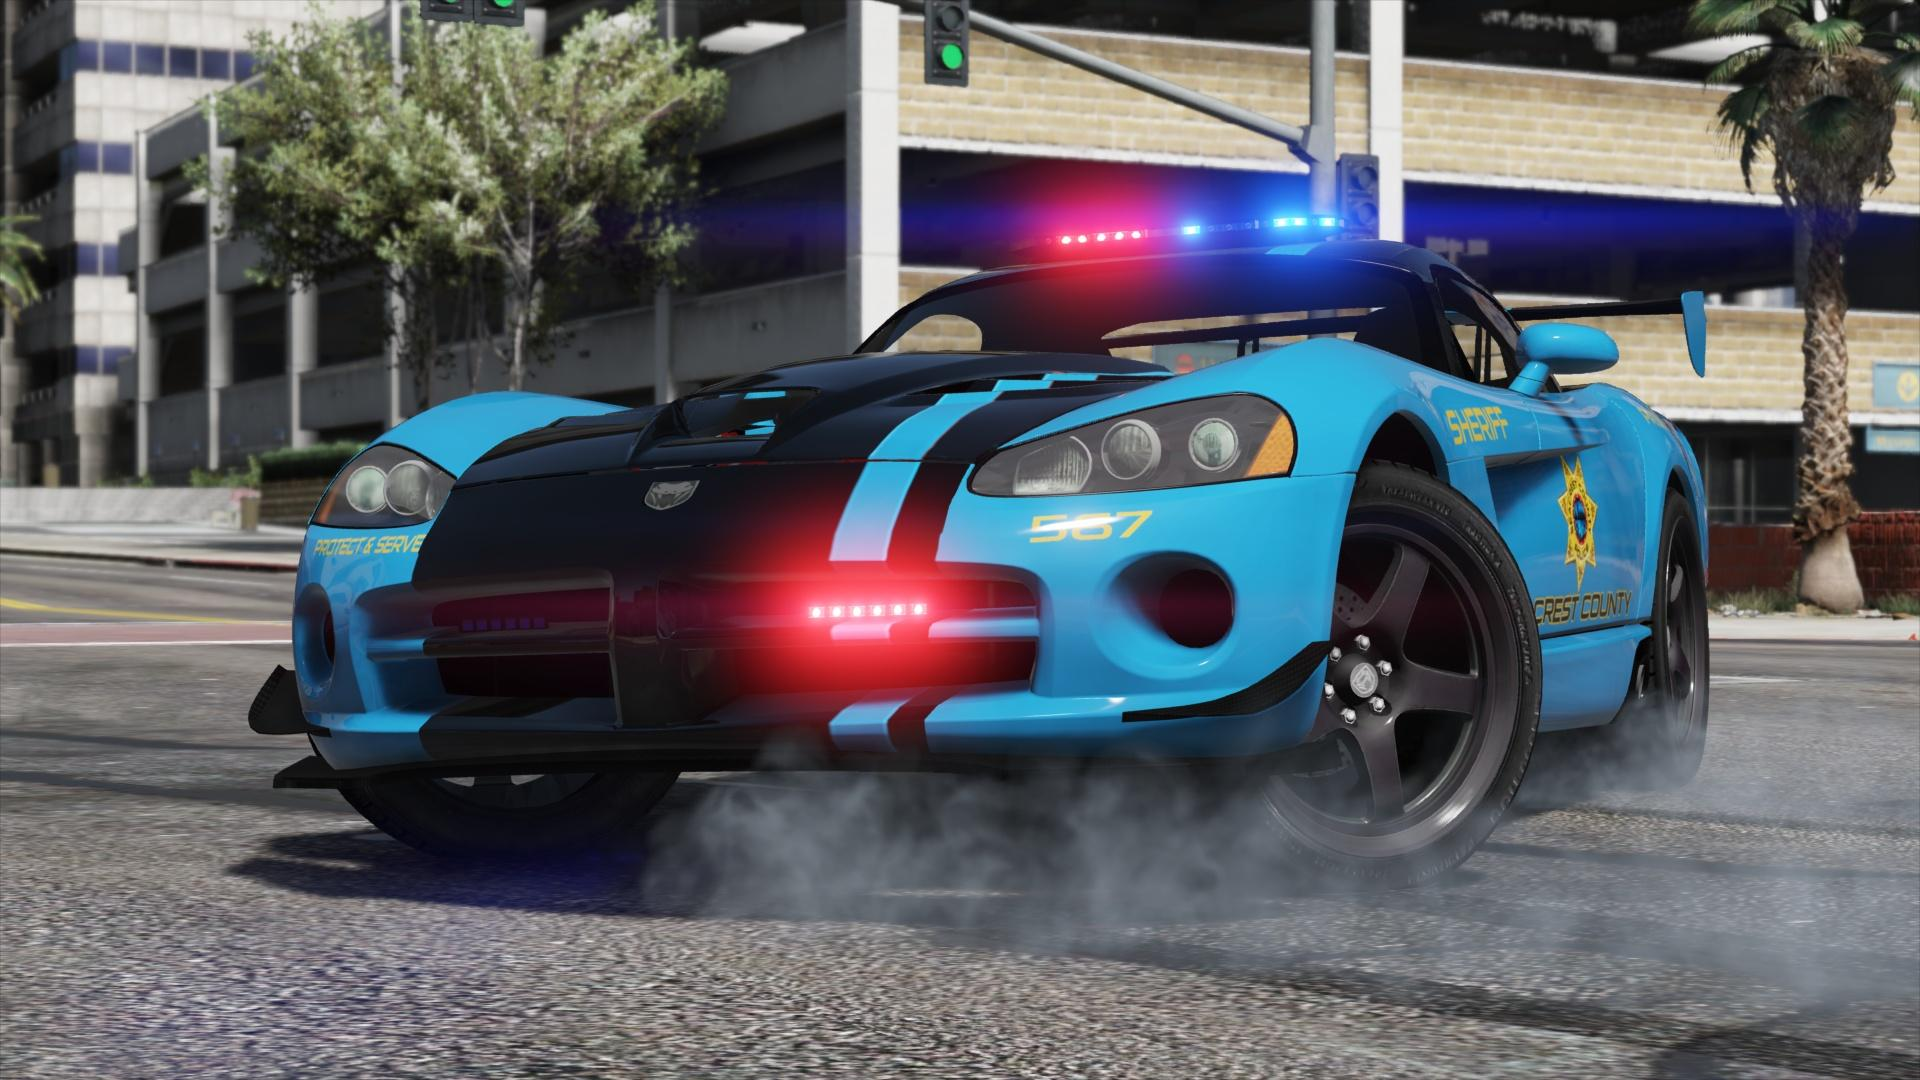 Dodge Viper Srt 10 Acr Hot Pursuit Police Add On